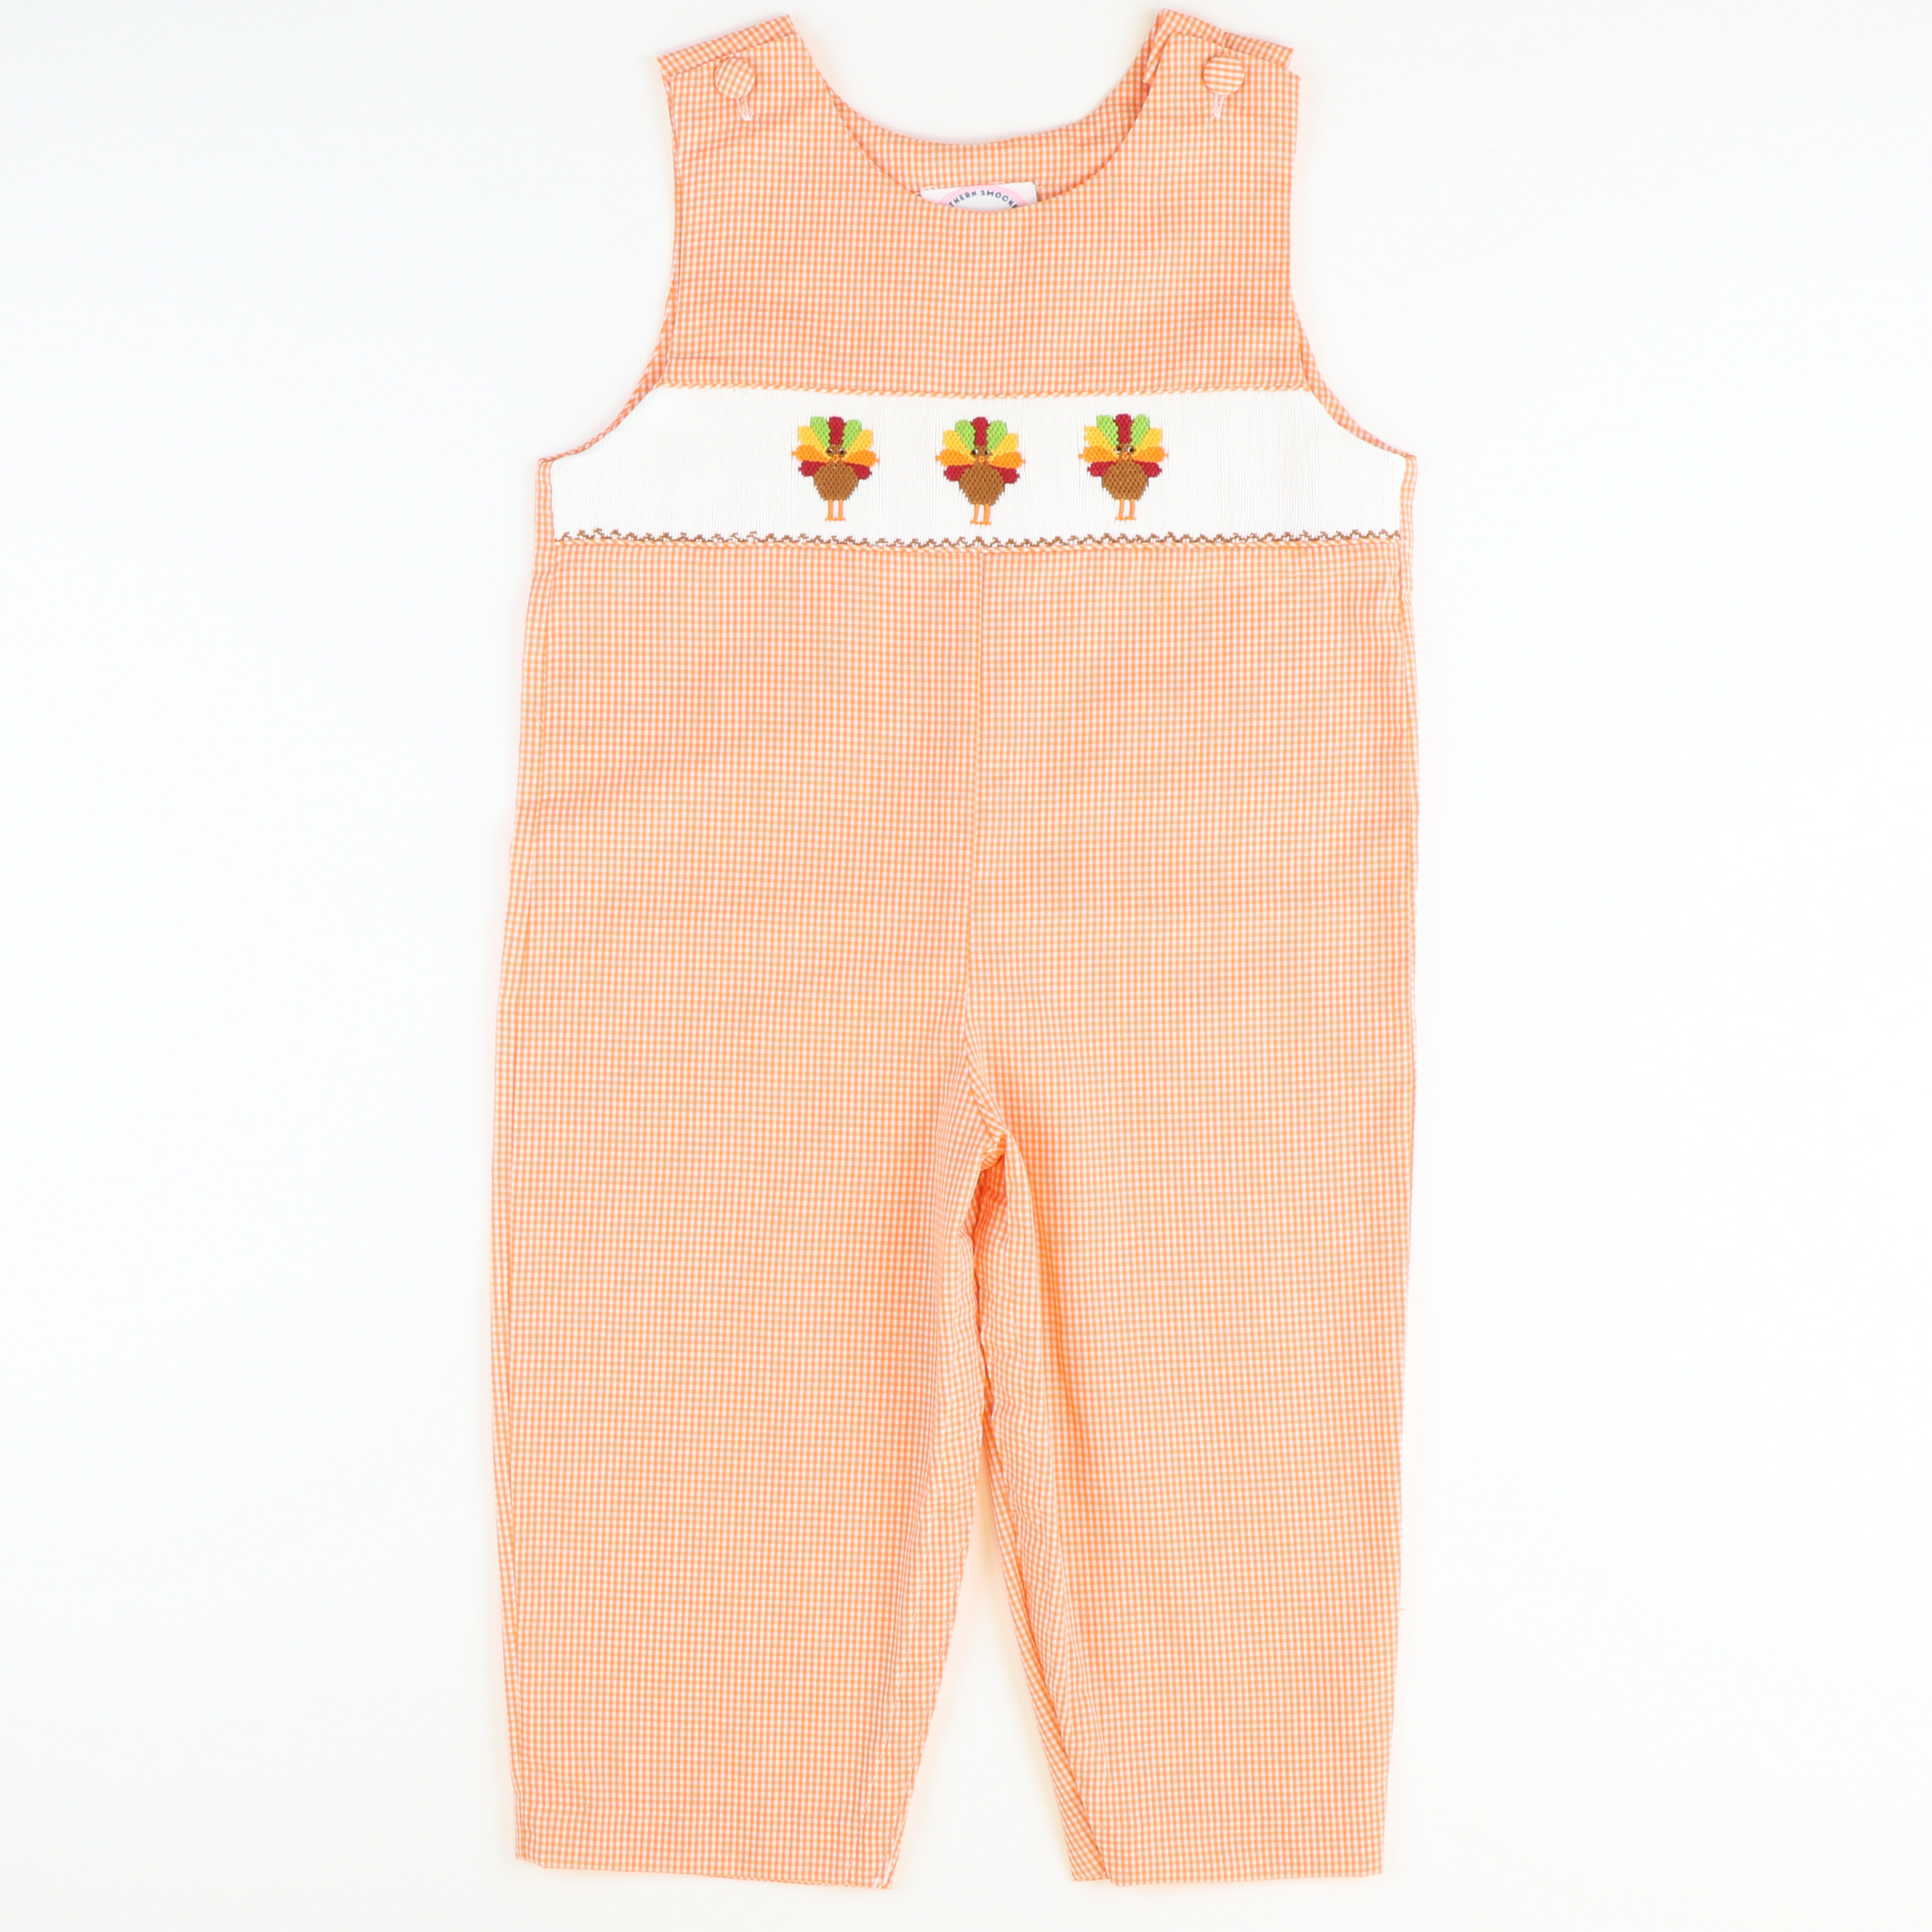 Smocked Turkeys Longall - Orange Mini Gingham